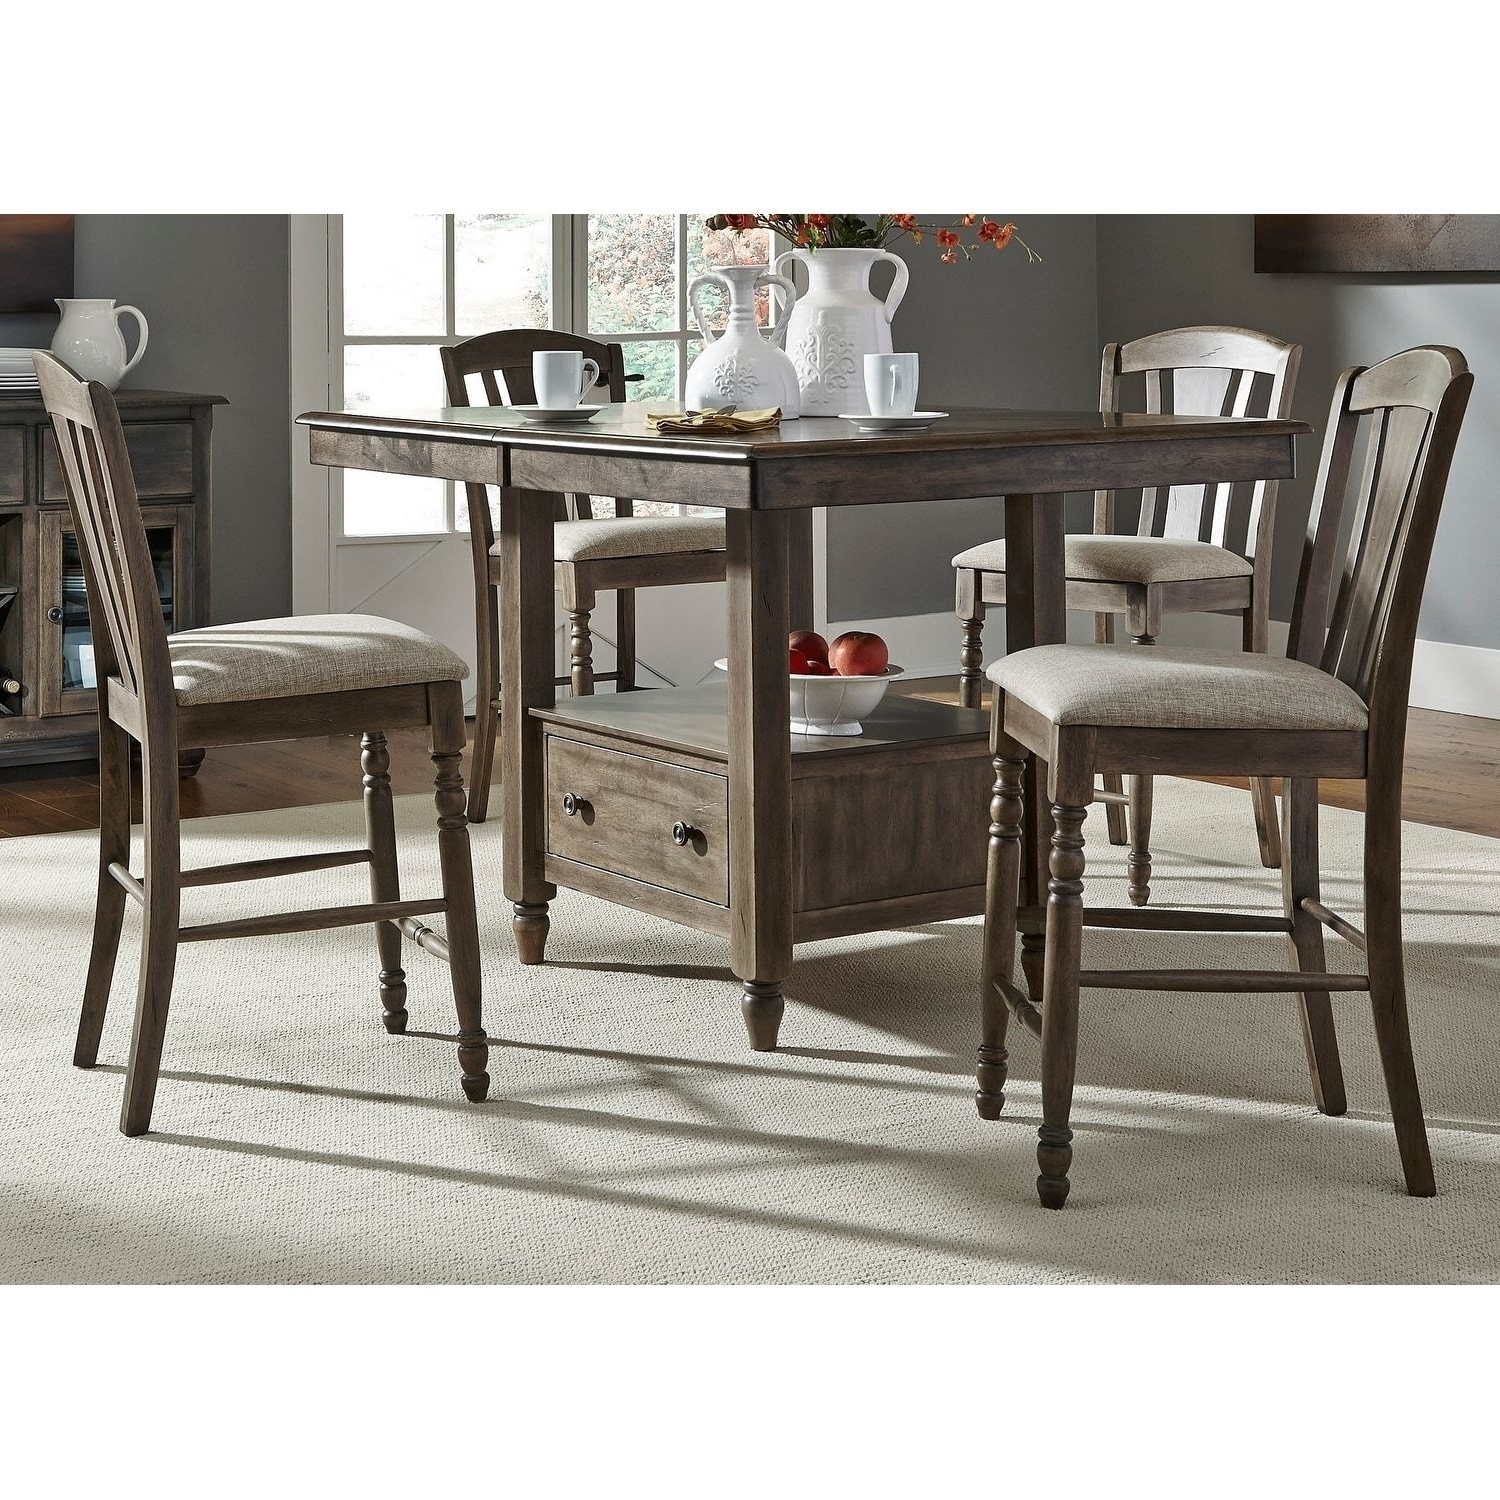 Well Liked Combs 5 Piece 48 Inch Extension Dining Sets With Mindy Side Chairs With Liberty Candlewood Weather Grey 7 Piece Slat Back Gathering Dinette (View 18 of 25)